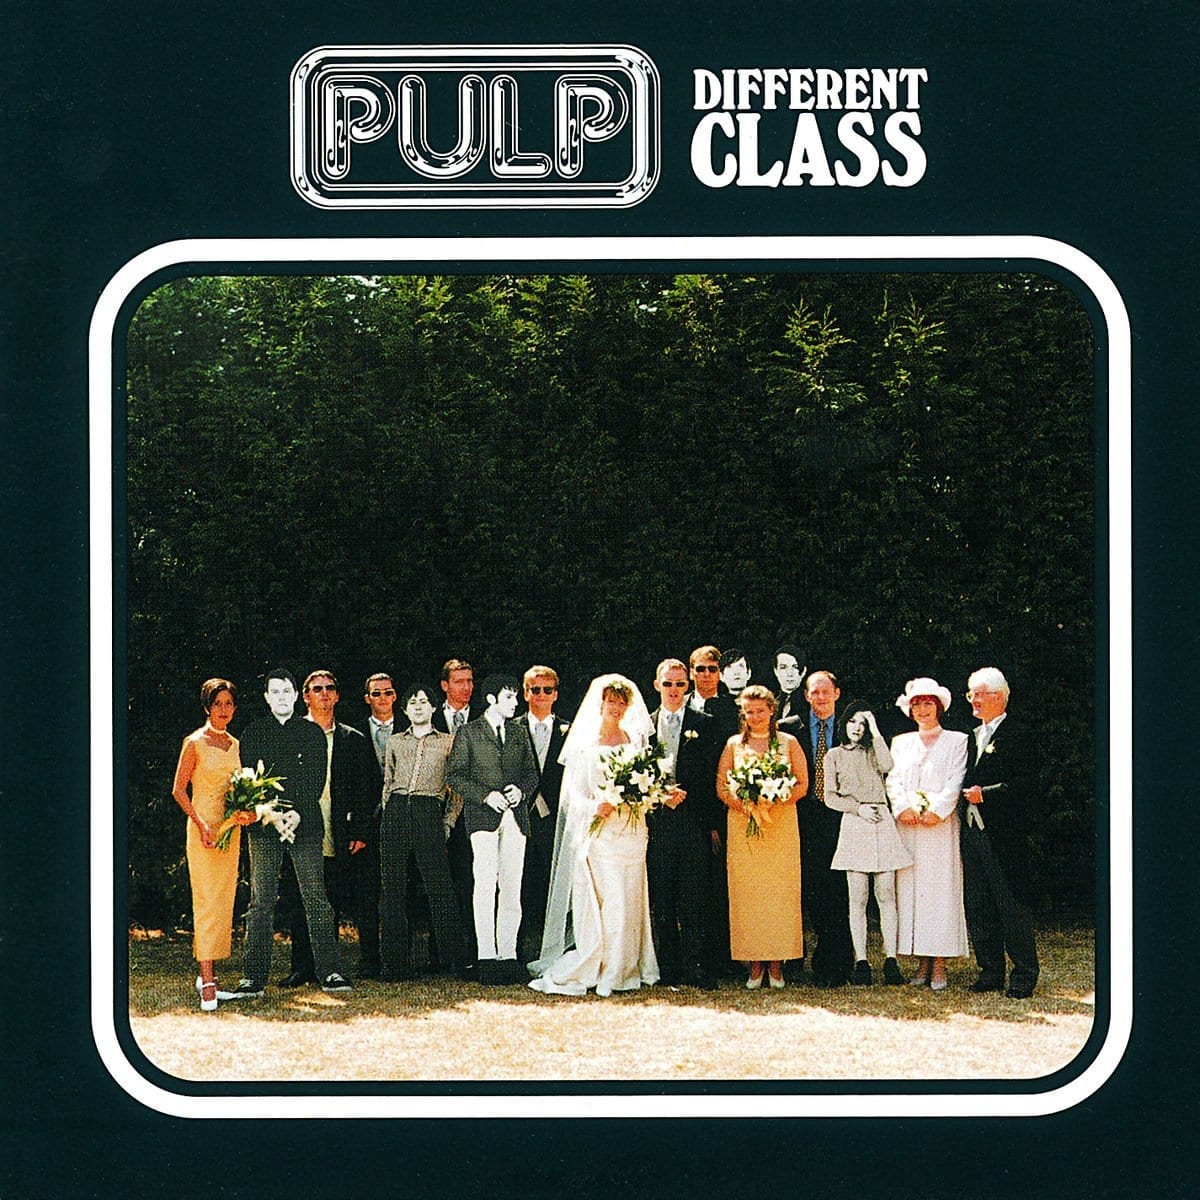 20 Years Strong: Celebrating Pulp's 'Different Class'